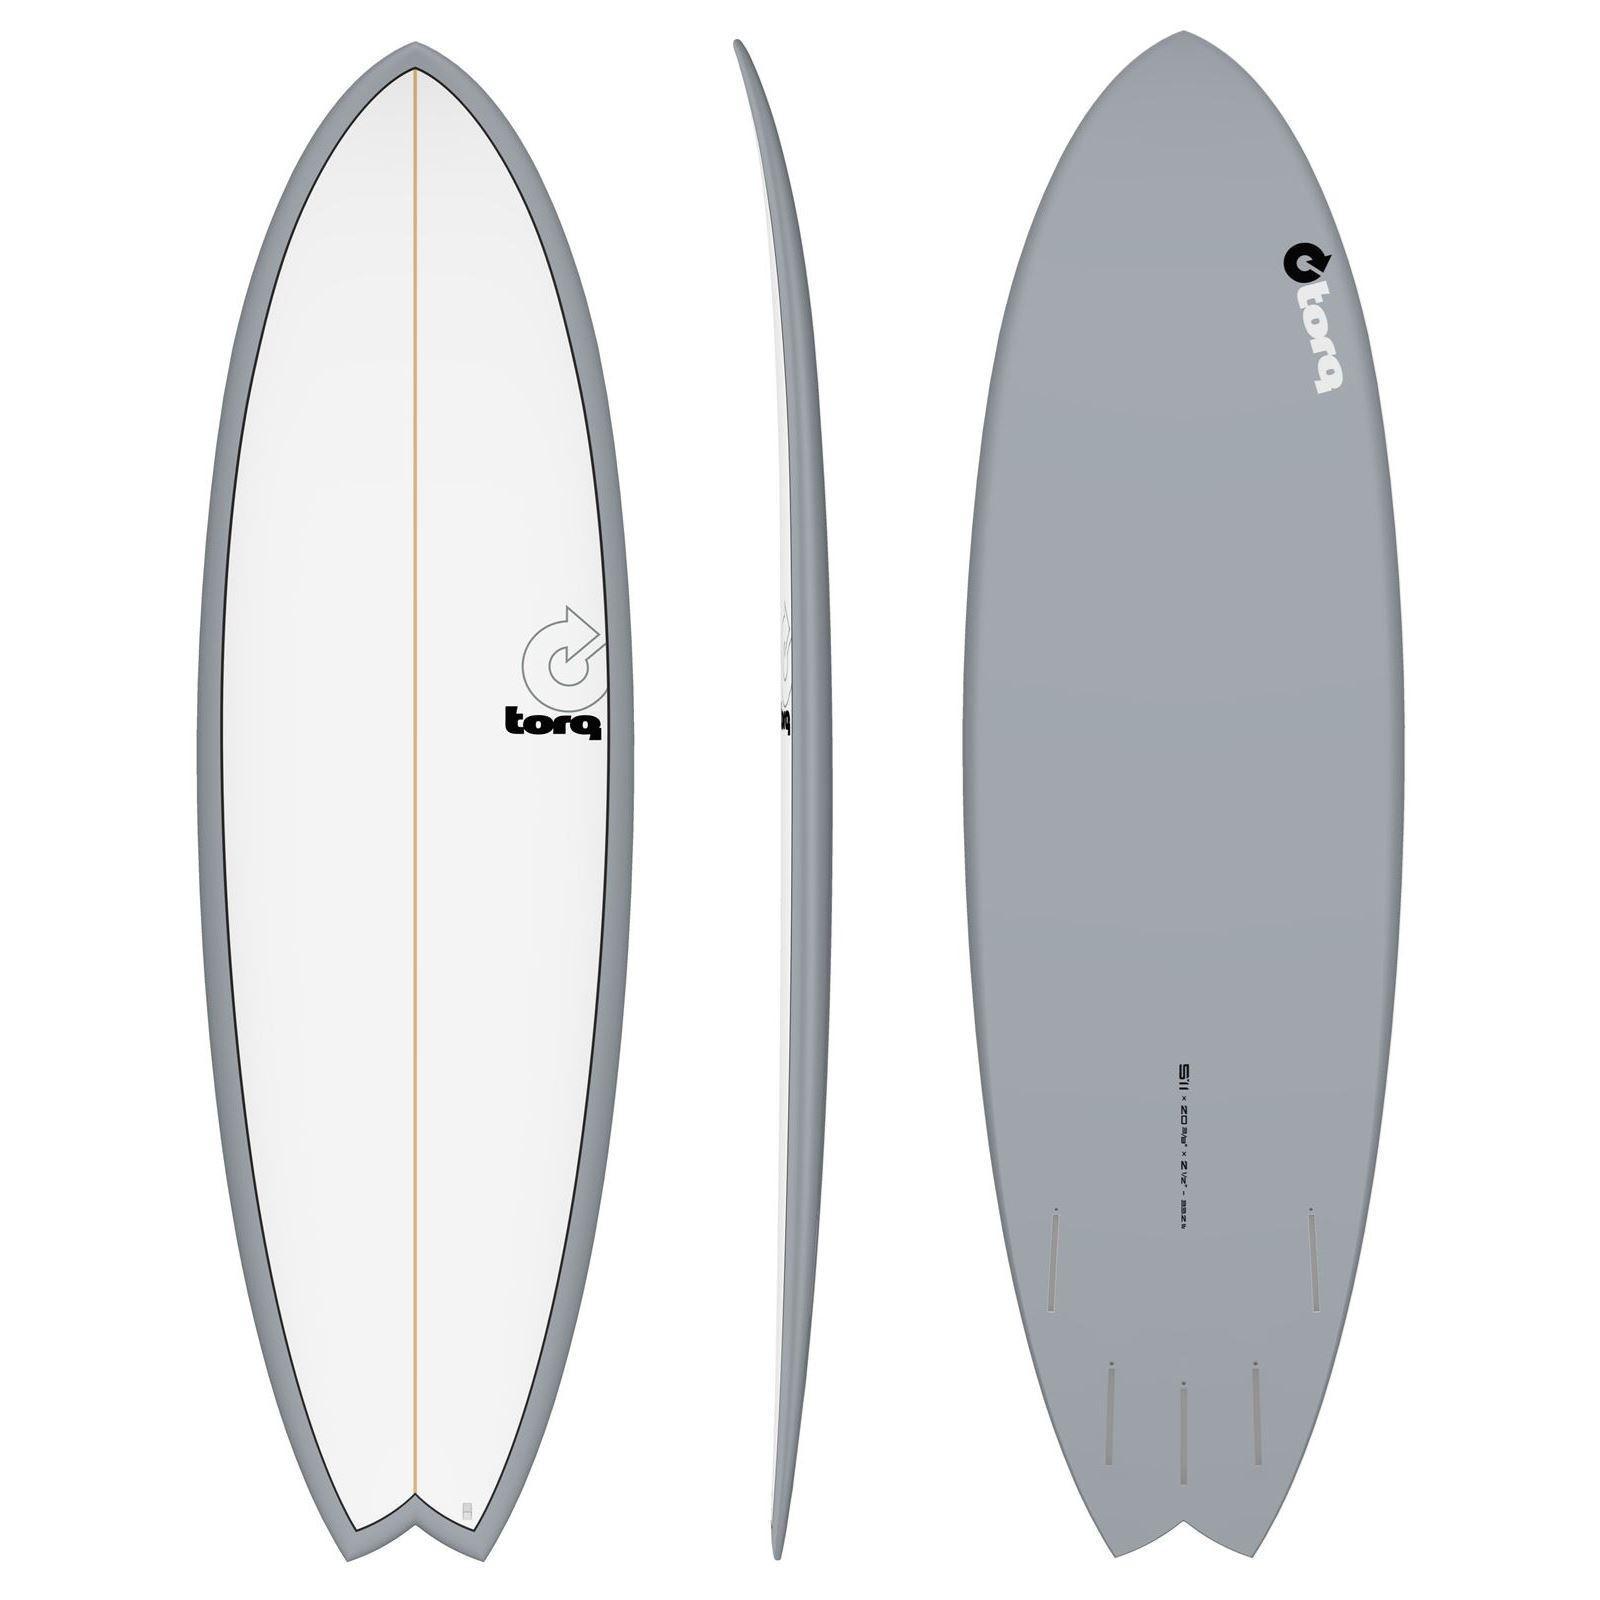 Surfboard TORQ Epoxy TET 5.11 white Gray